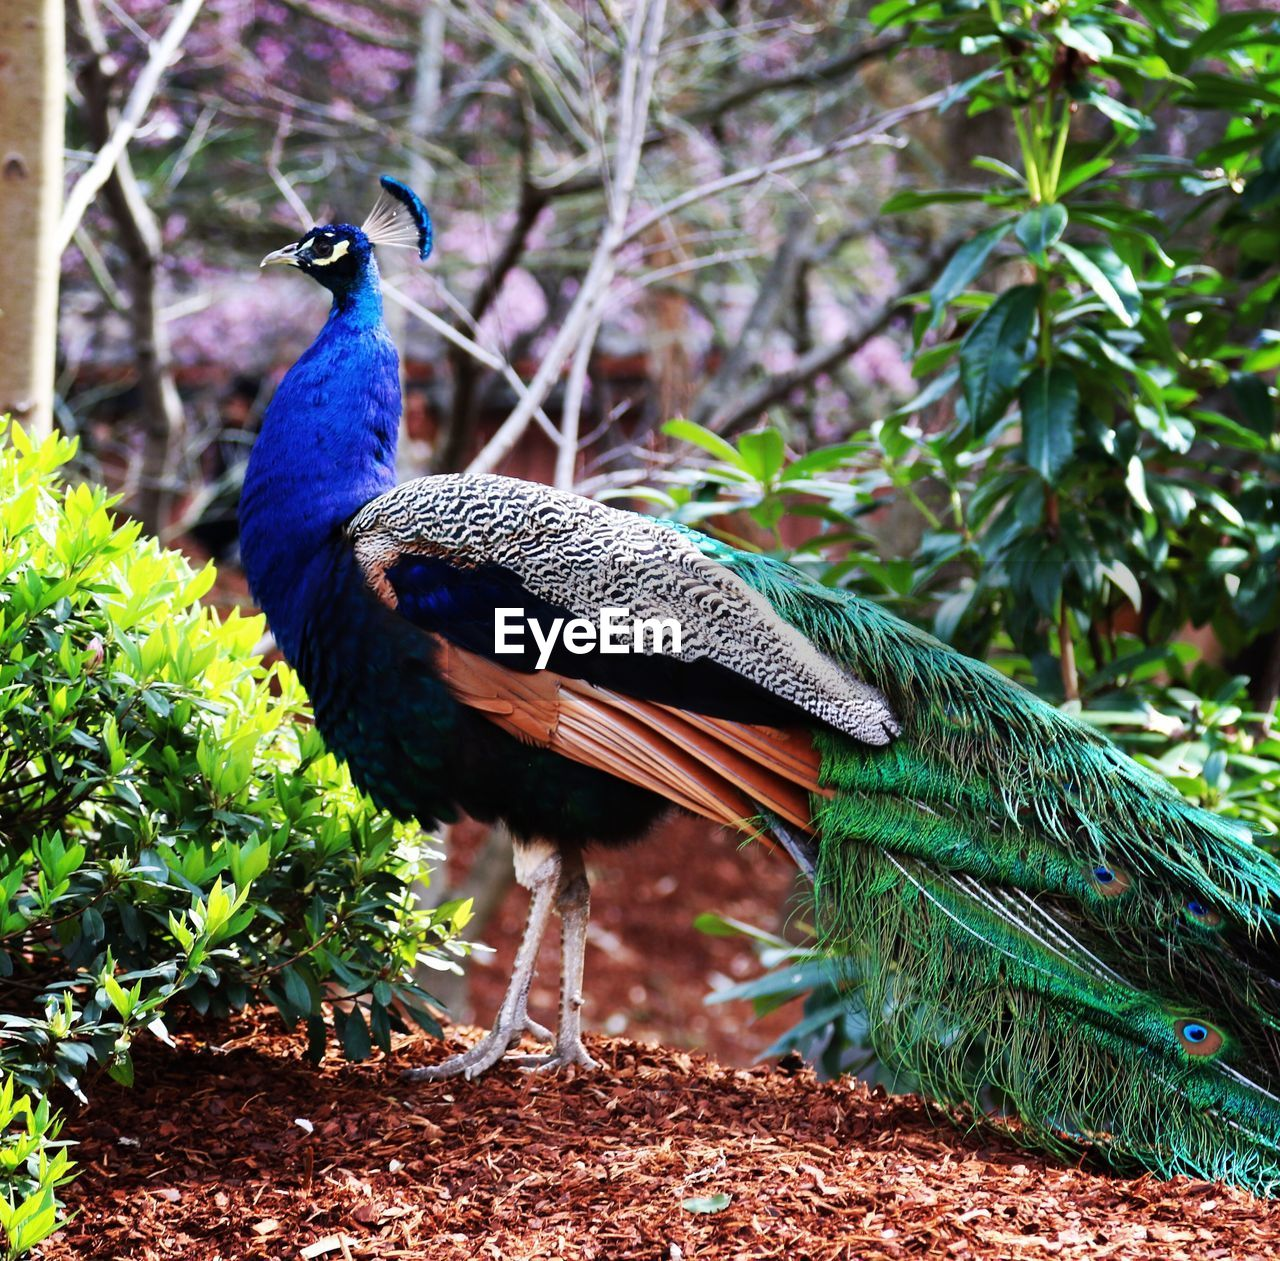 bird, animal themes, animal, vertebrate, one animal, animal wildlife, peacock, animals in the wild, plant, nature, day, no people, focus on foreground, green color, tree, male animal, blue, beauty in nature, feather, leaf, outdoors